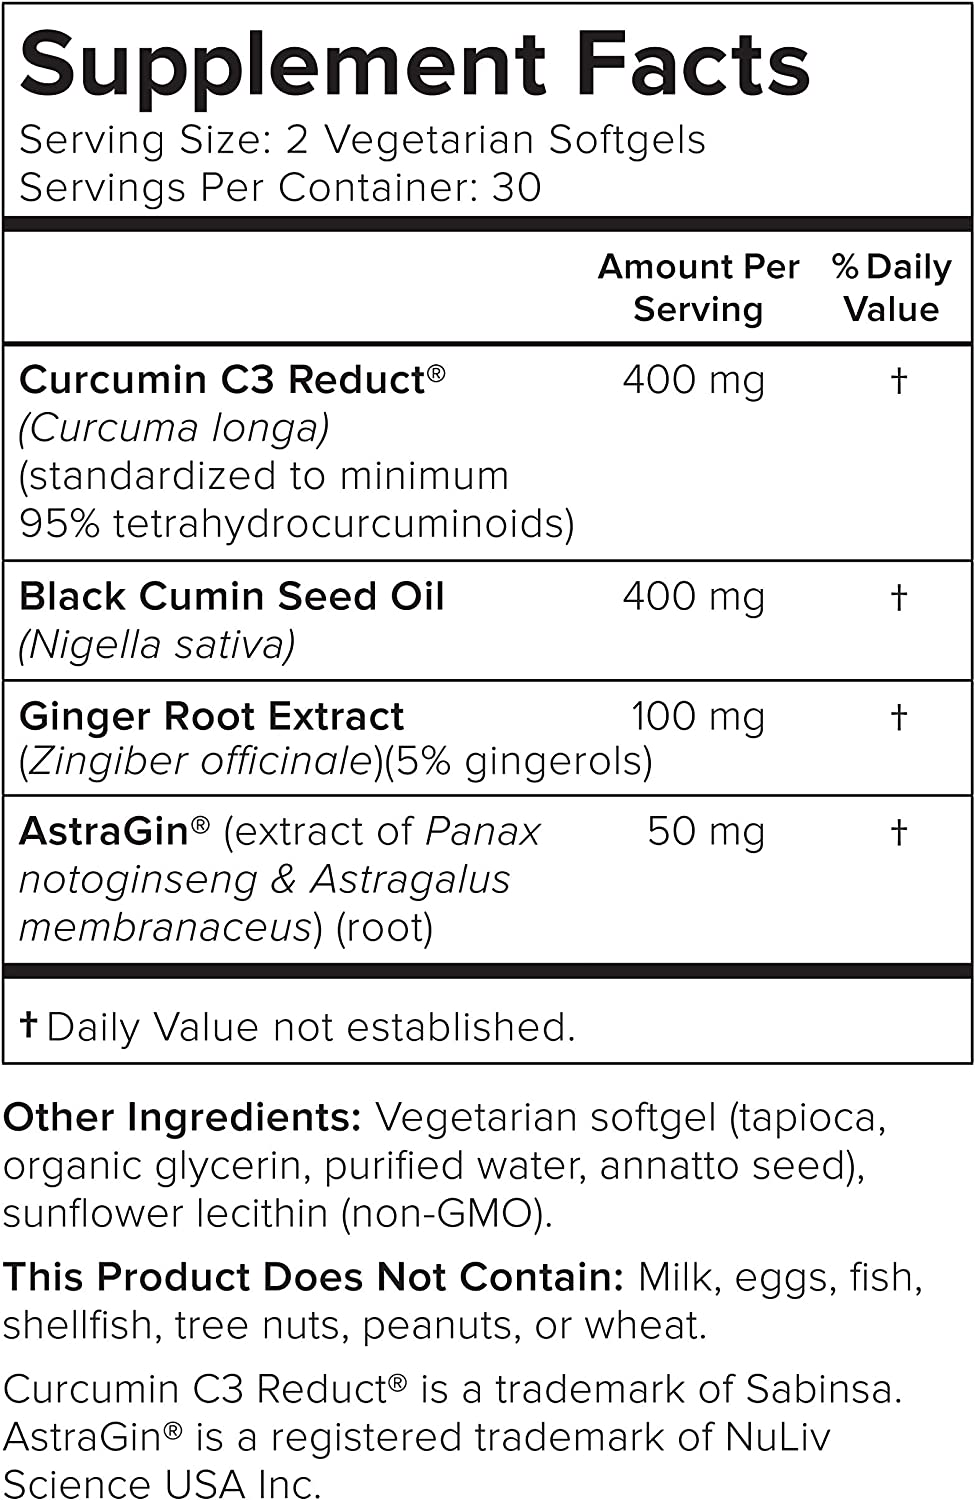 Smarter Turmeric Curcumin - Potency and Absorption in a SoftGel - The Most Active Form of Curcuminoid Found in the Turmeric Root - 95% Tetra-Hydro Curcuminoids (30 Servings)